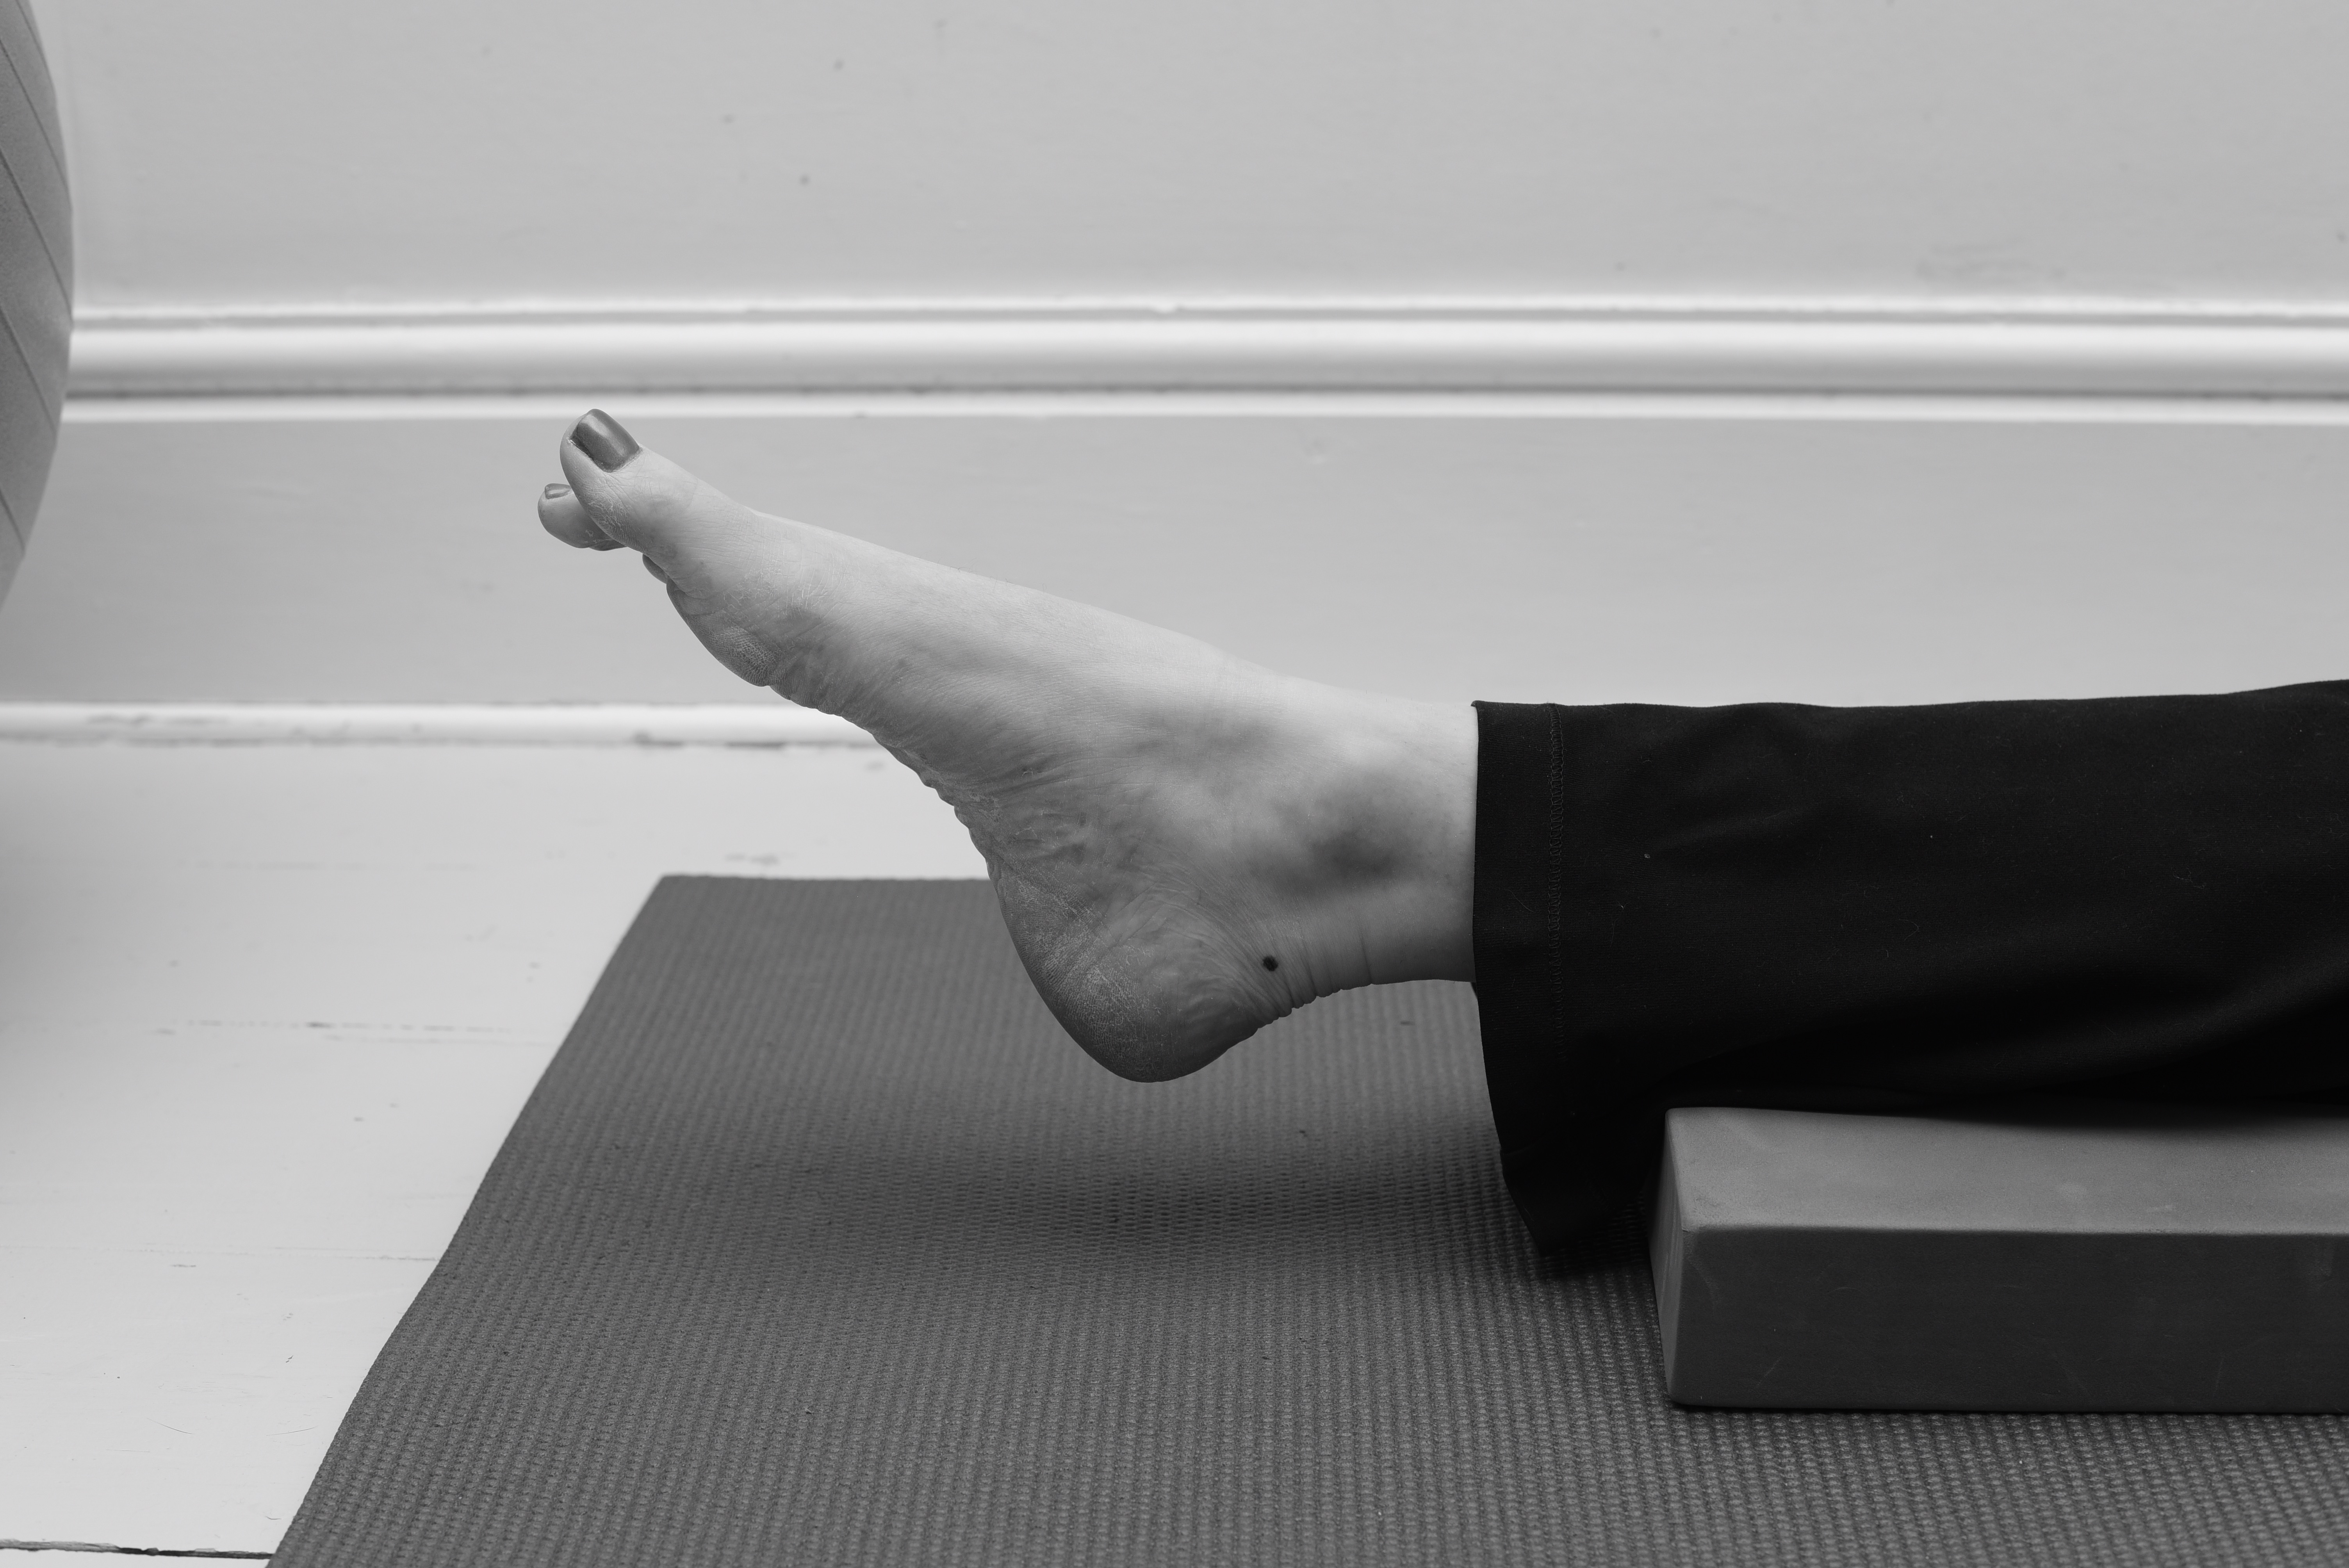 Toes point downwards - ankle exercise